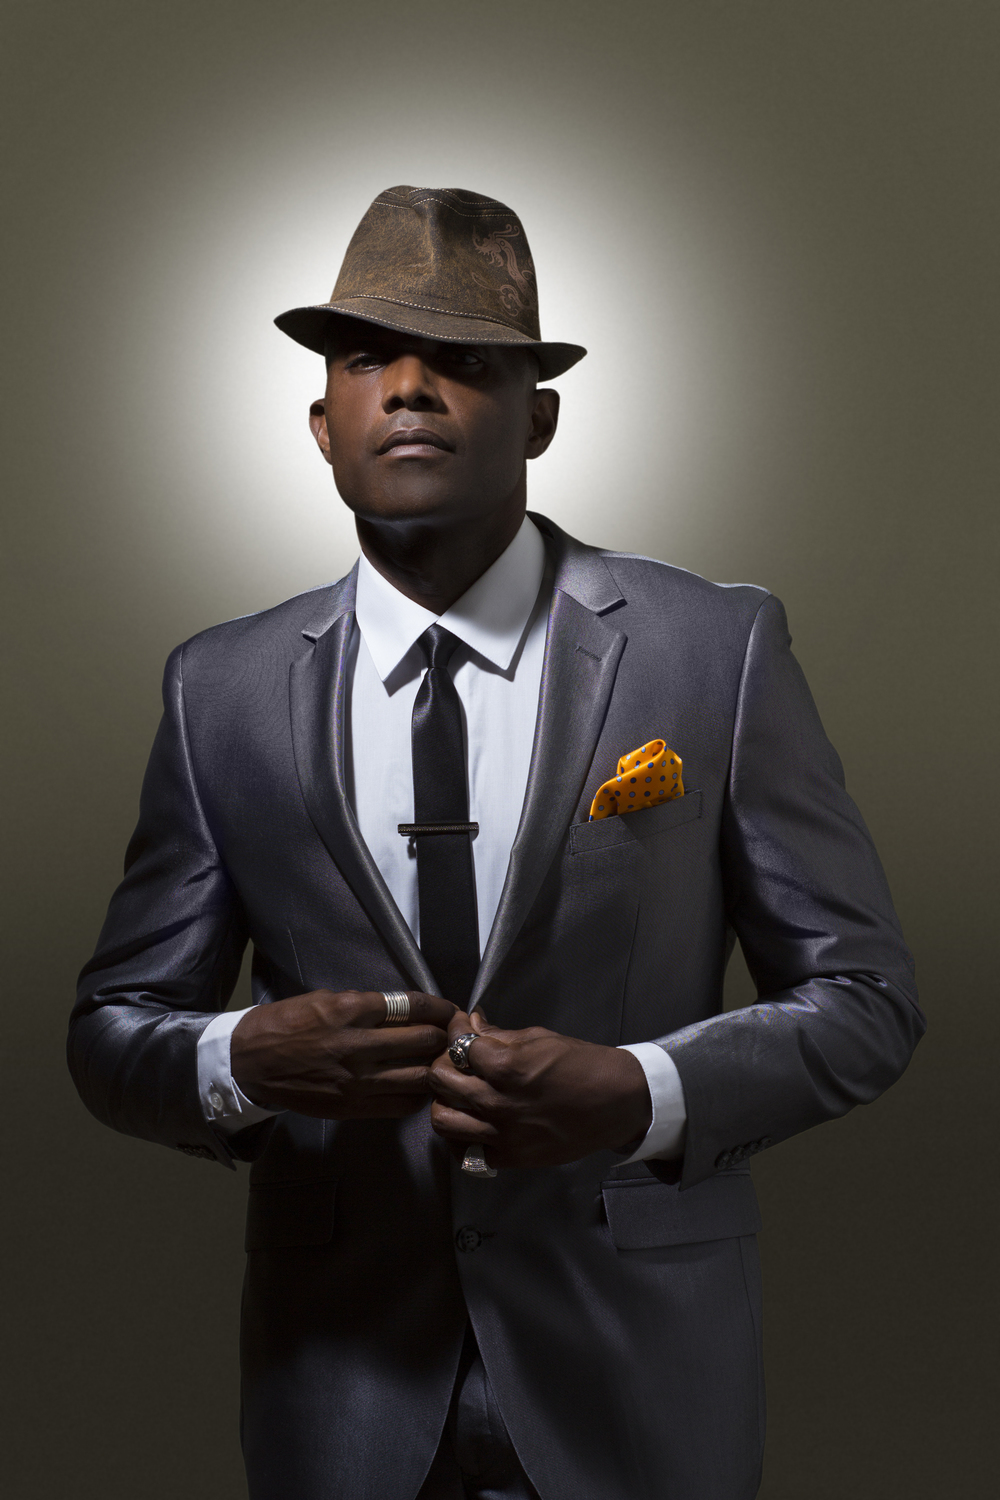 Sophis-Music-Suit-Fedora-Buttoning.jpg